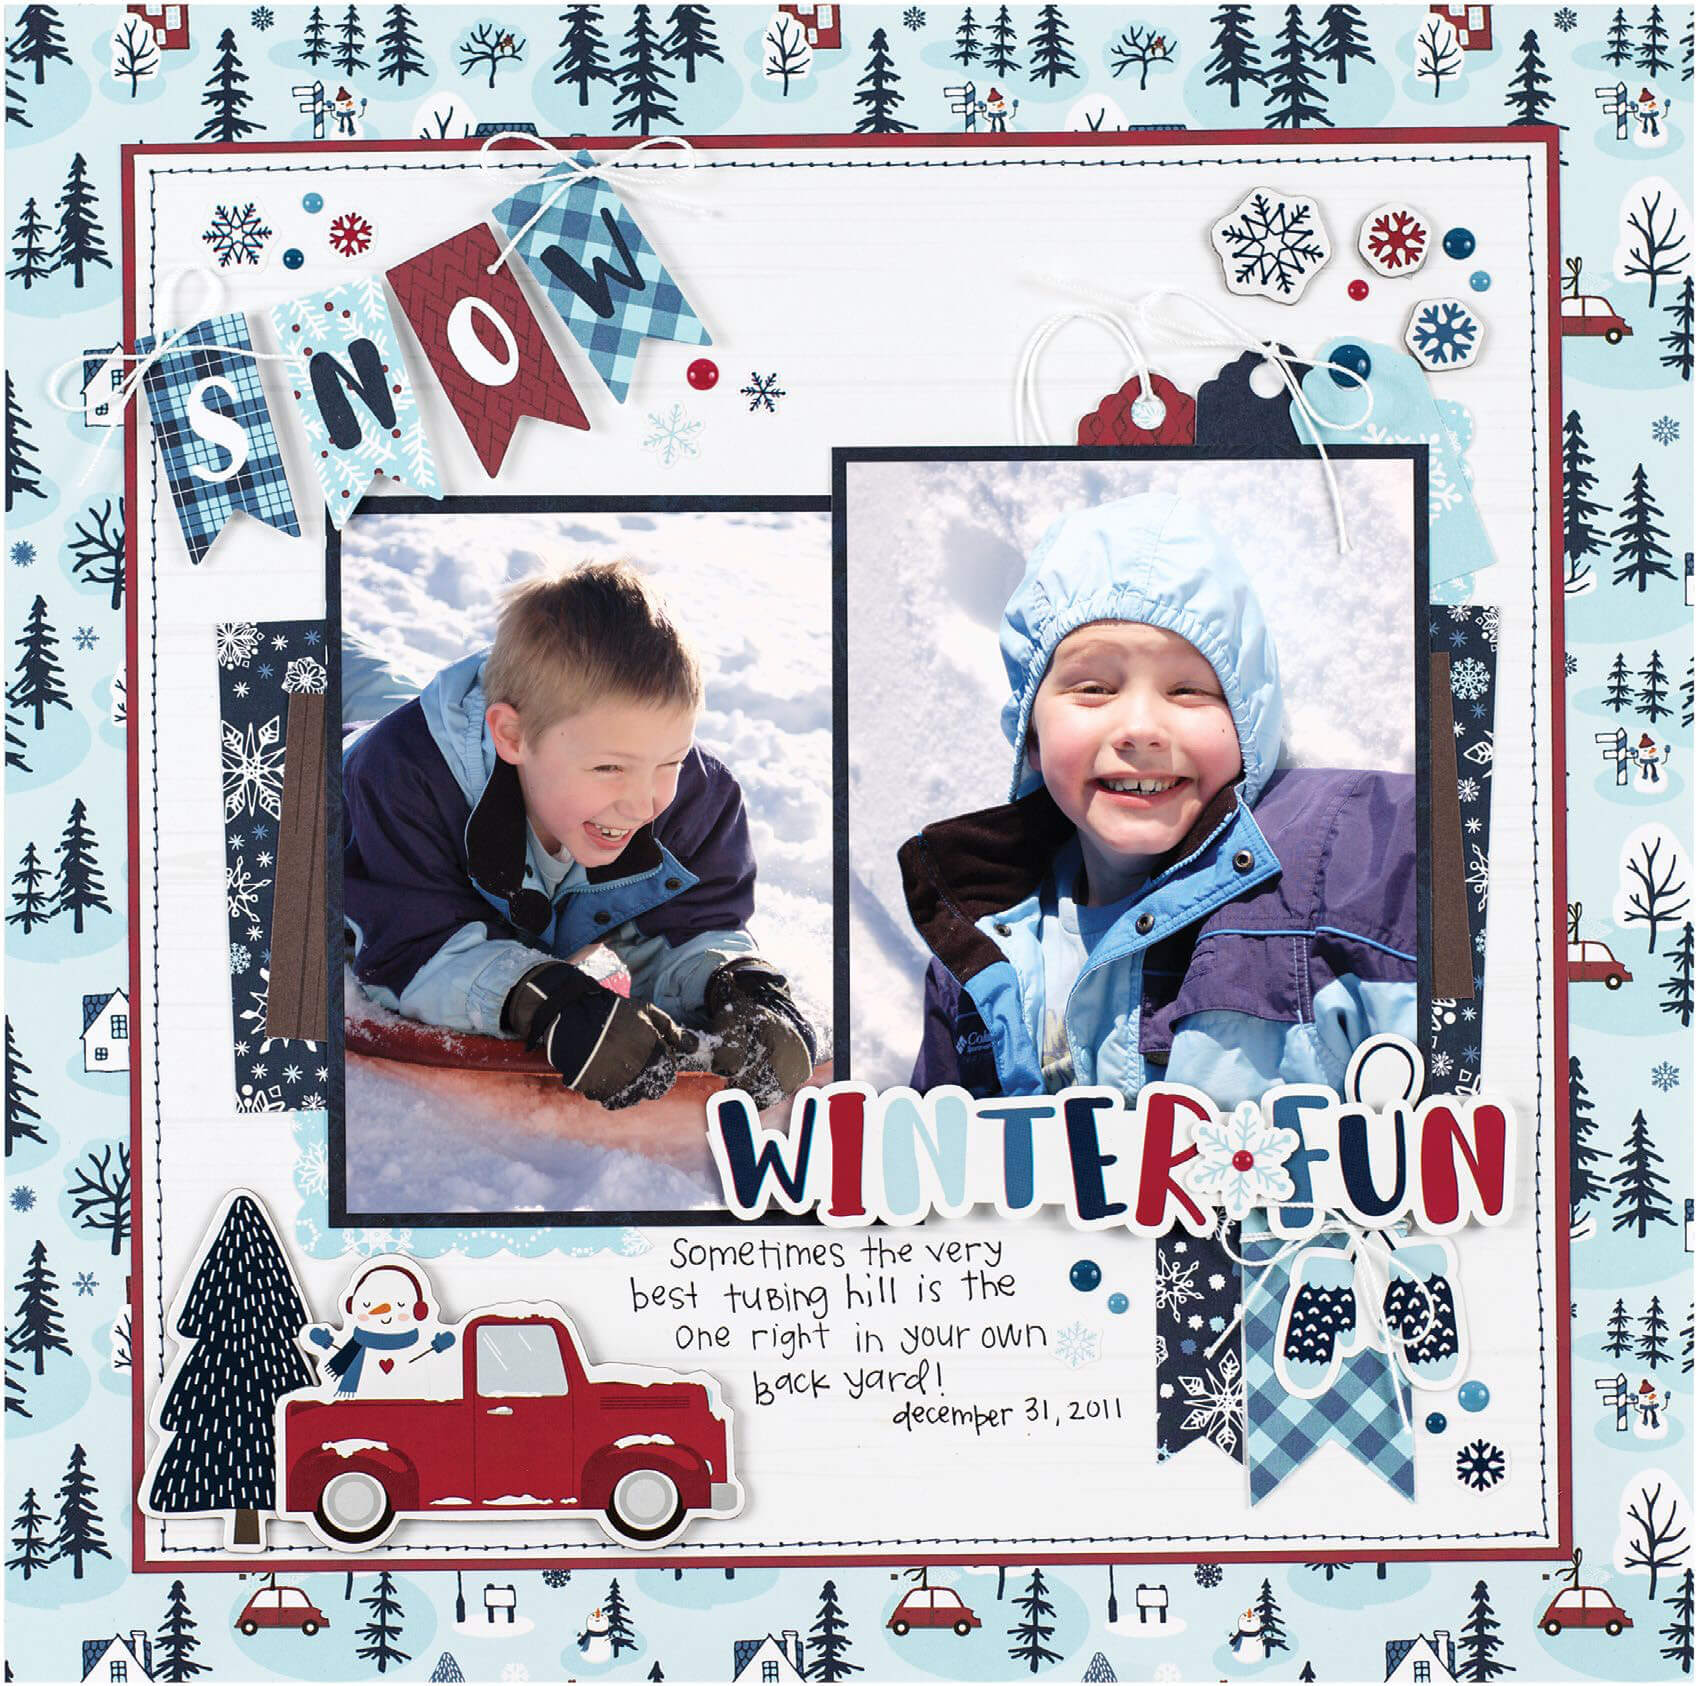 Scrapbook & Cards Today - Winter 2019 - Winter Fun layout by Wendy Sue Anderson